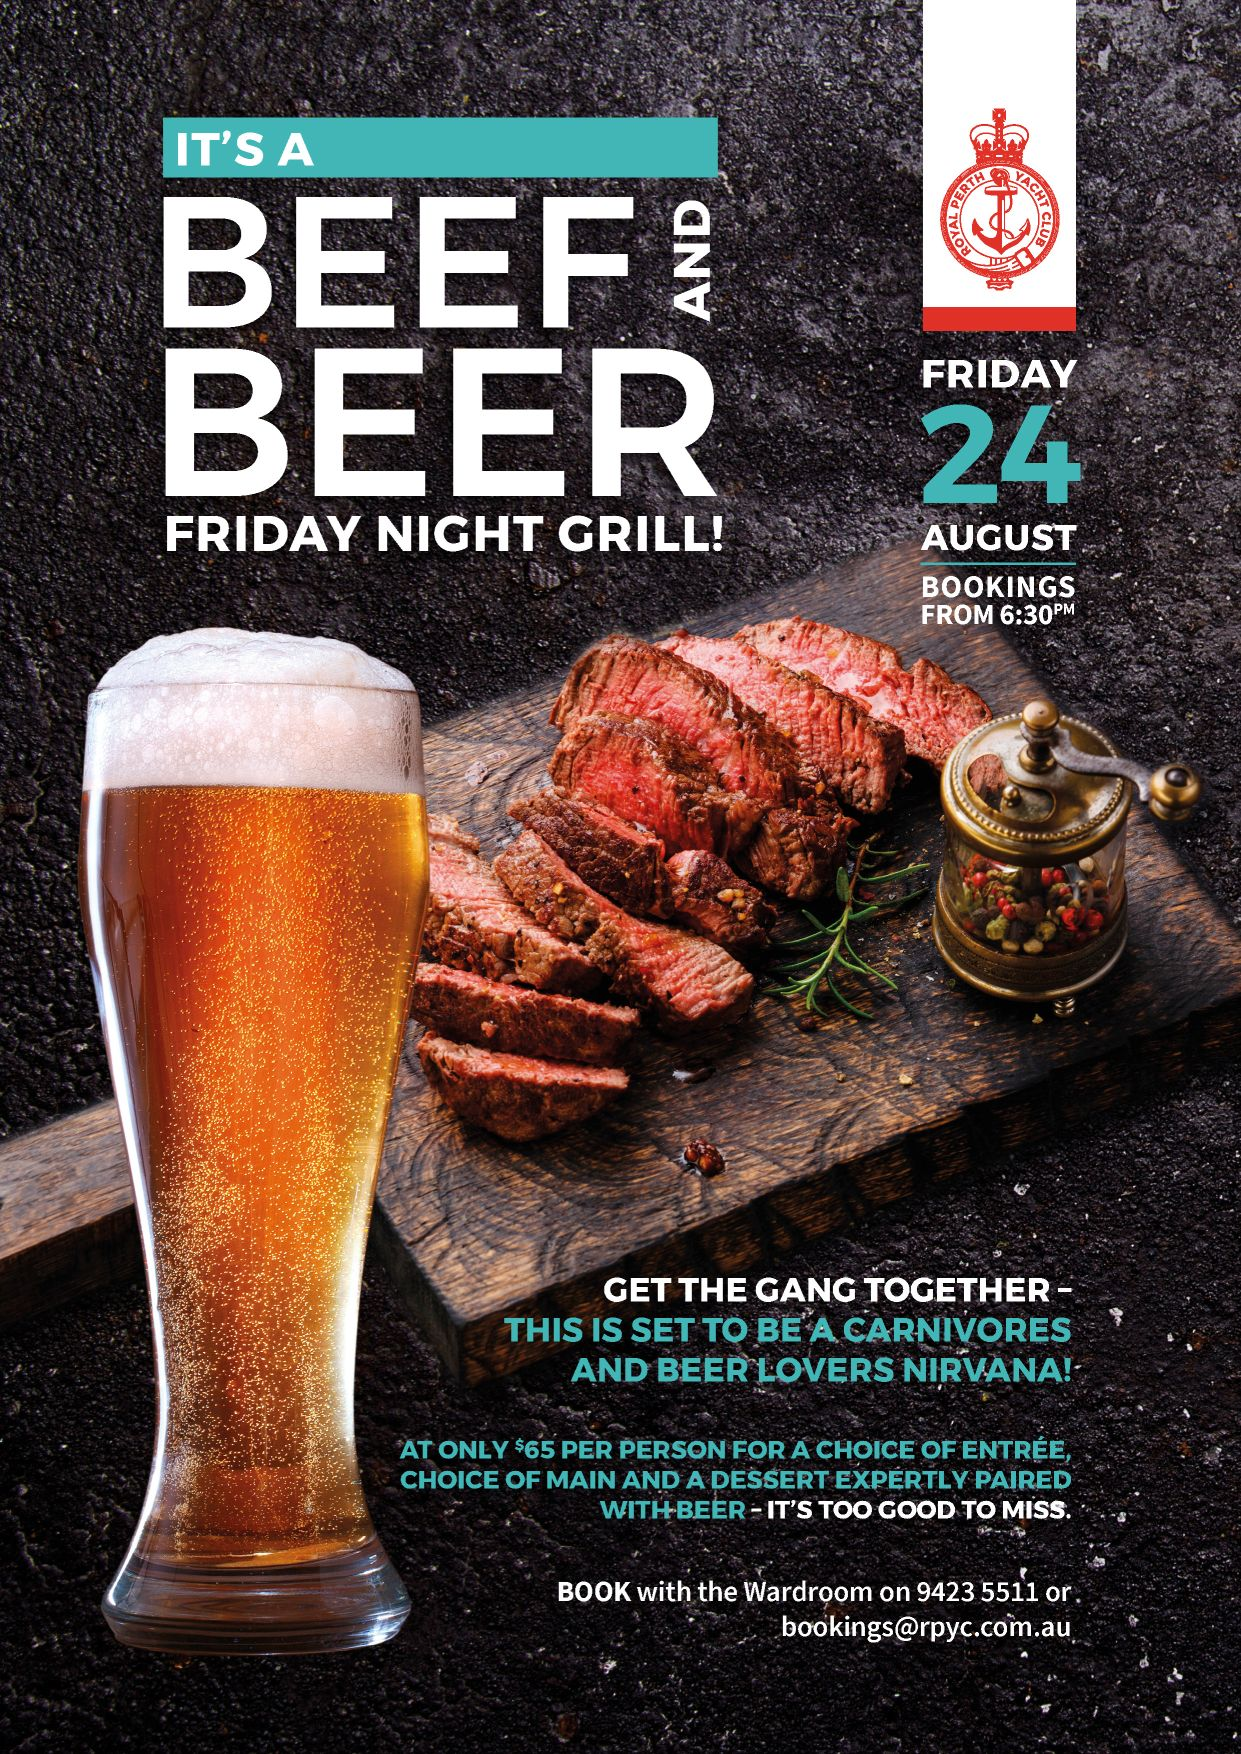 RPYC Beef and Beer A4 Poster 08 2018